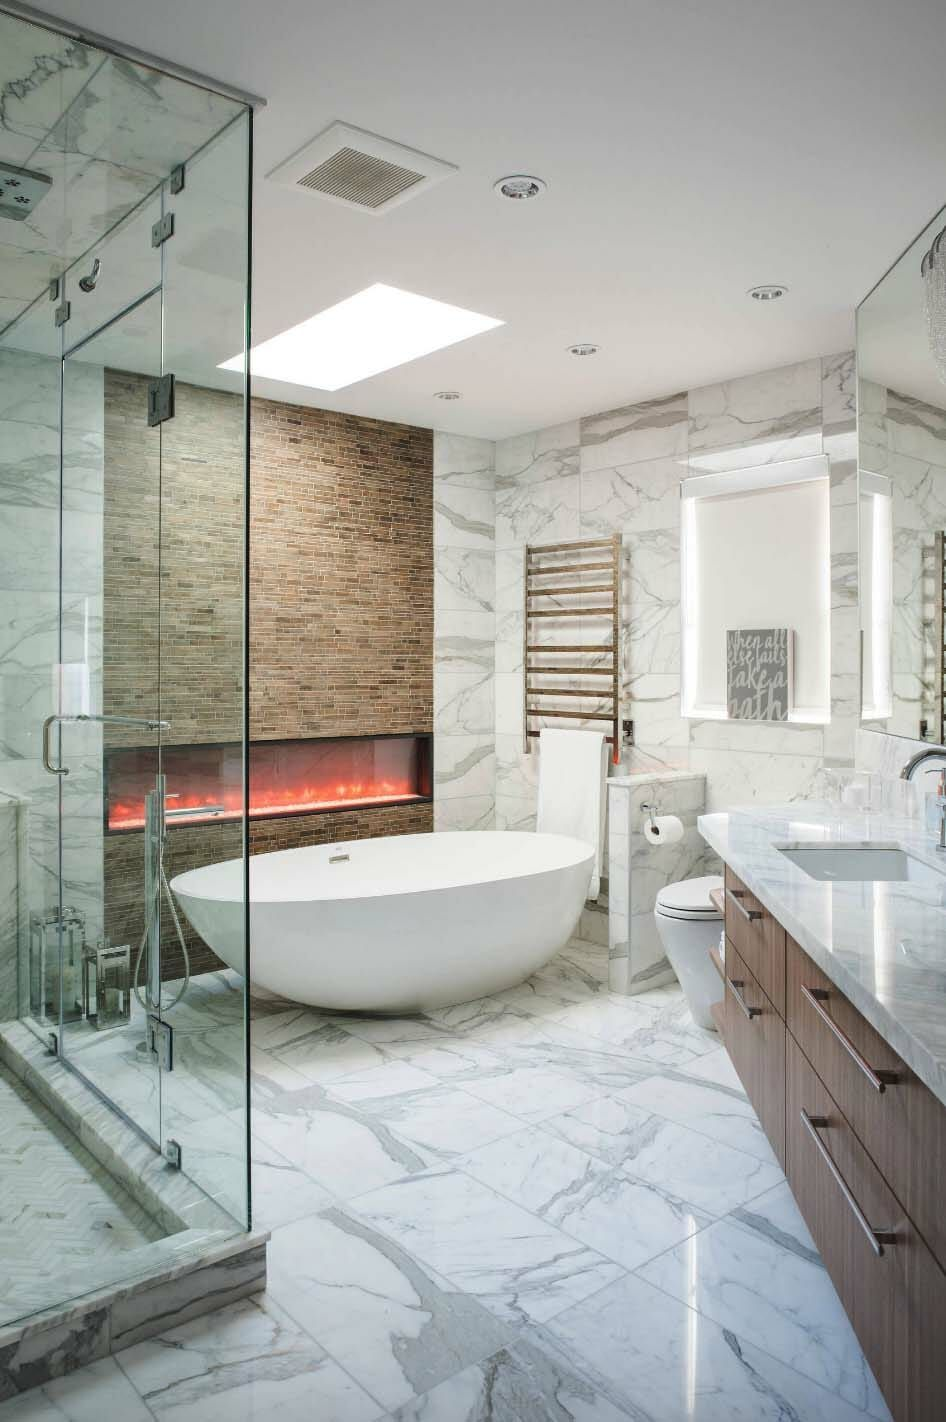 20 Inspiring Ideas To Create A Dreamy Master Bathroom Retreat Big Bathrooms Bathroom Retreat Bathroom Fireplace